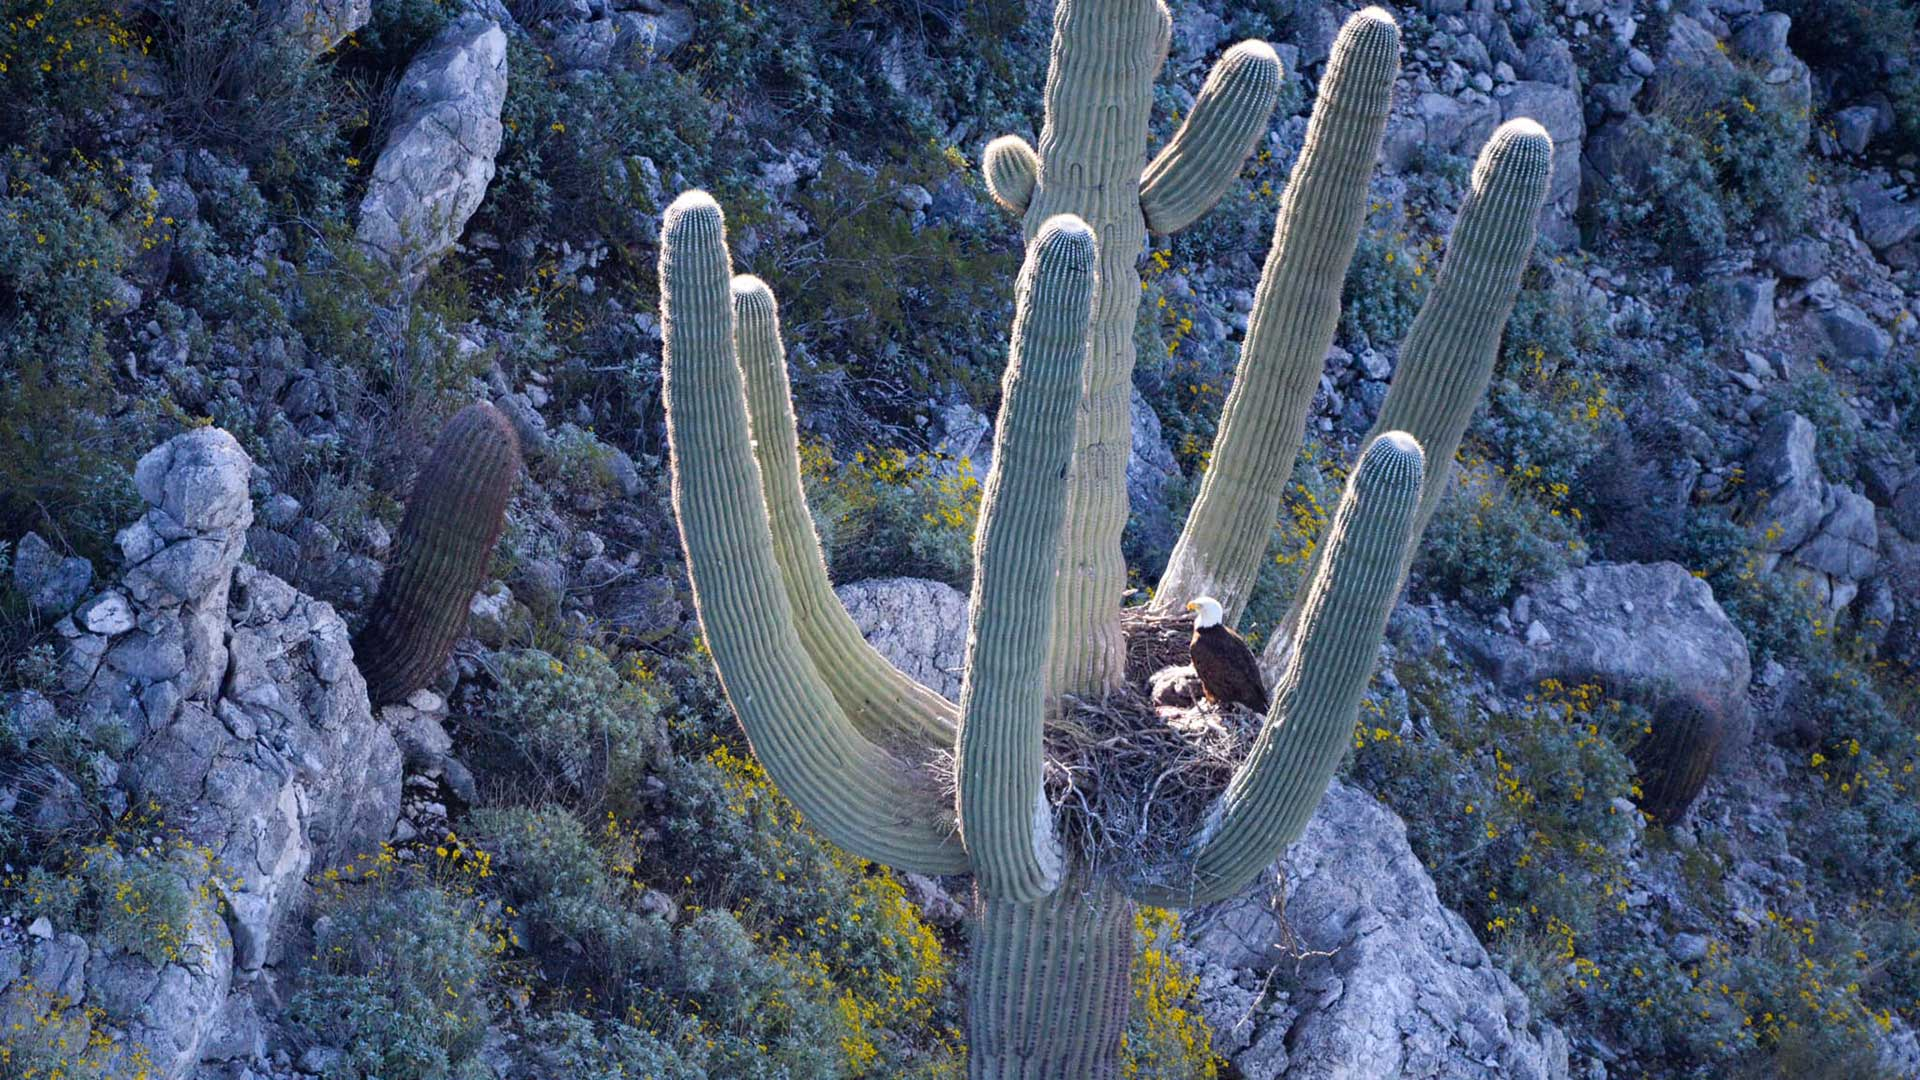 Arizona Game and Fish said April 15 they found bald eagles nesting in a large saguaro near a central Arizona reservoir.